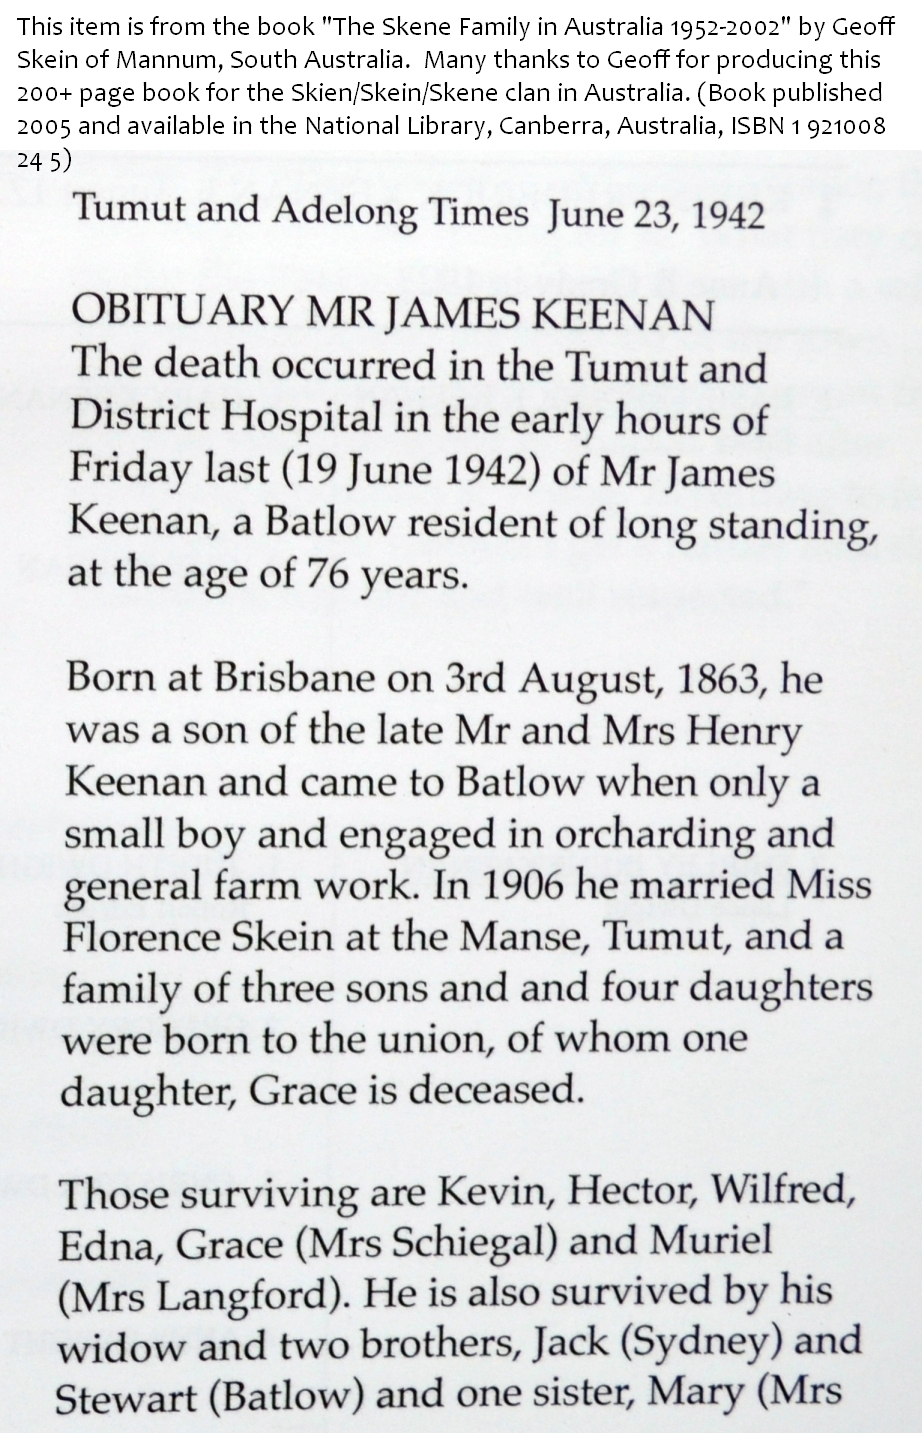 James keenan obituary Part 1